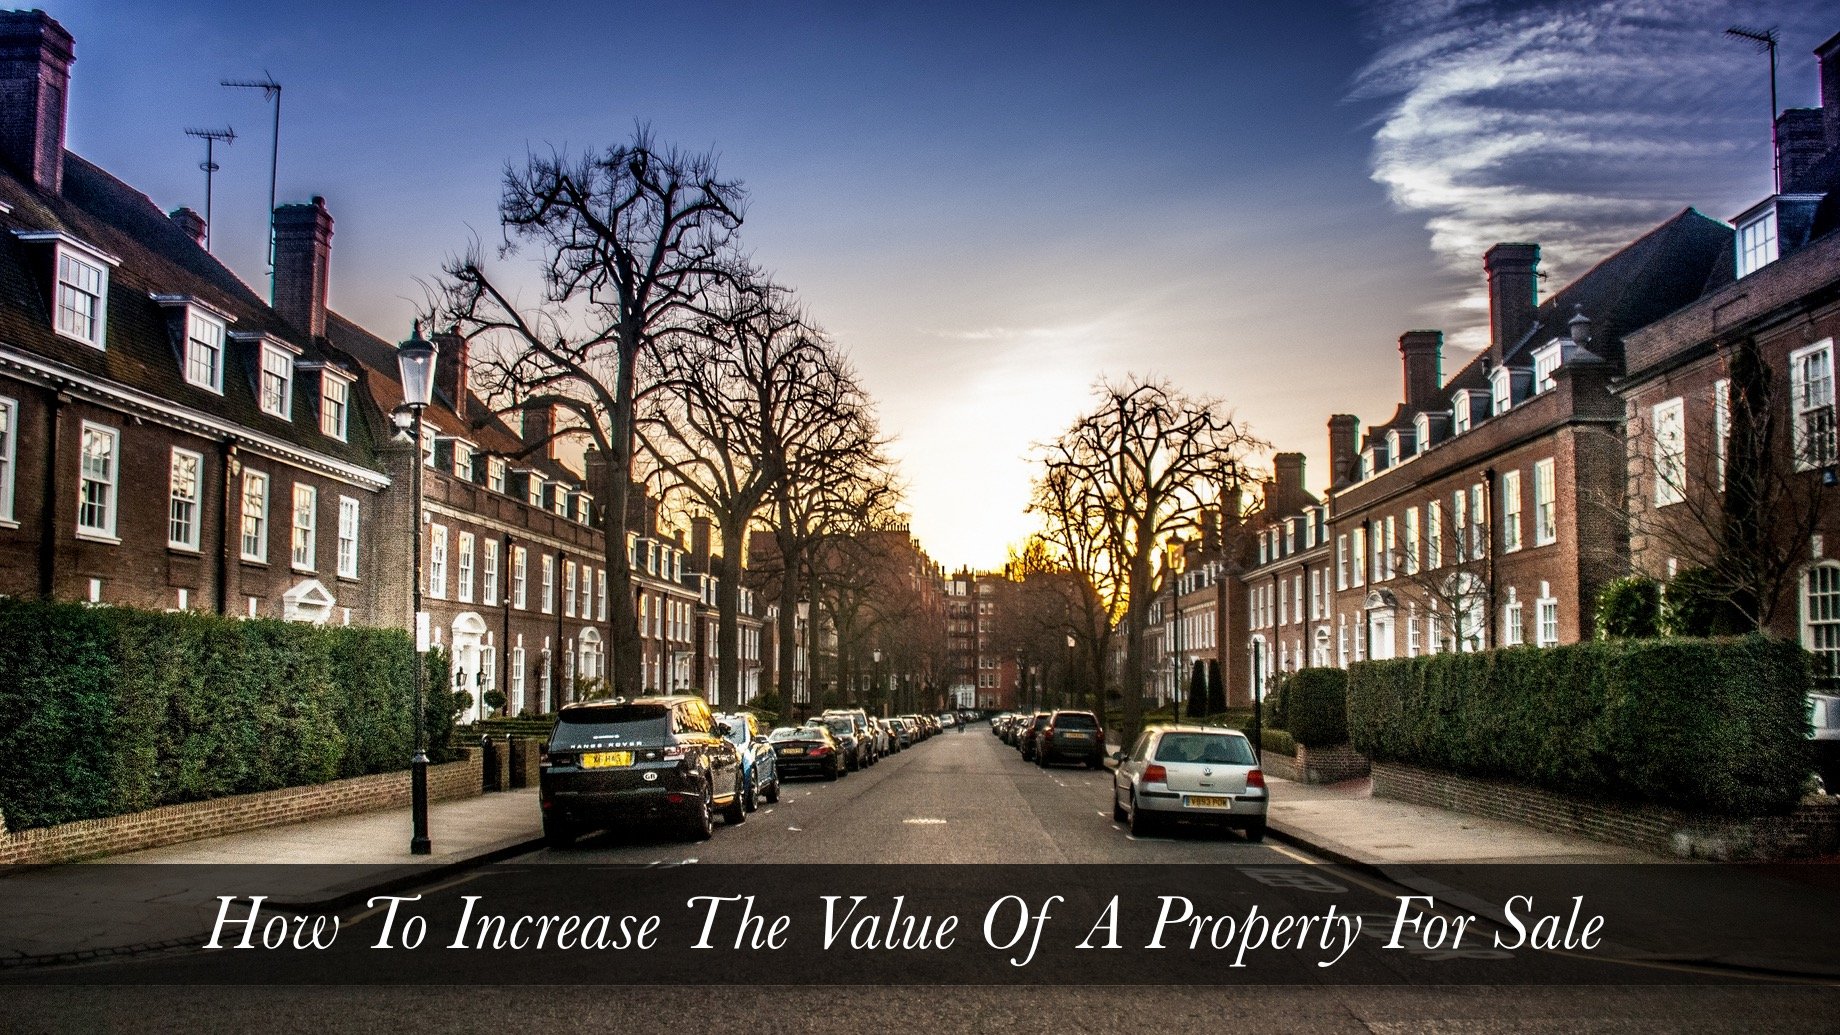 Real Estate Agent Explains How To Increase The Value Of A Property For Sale